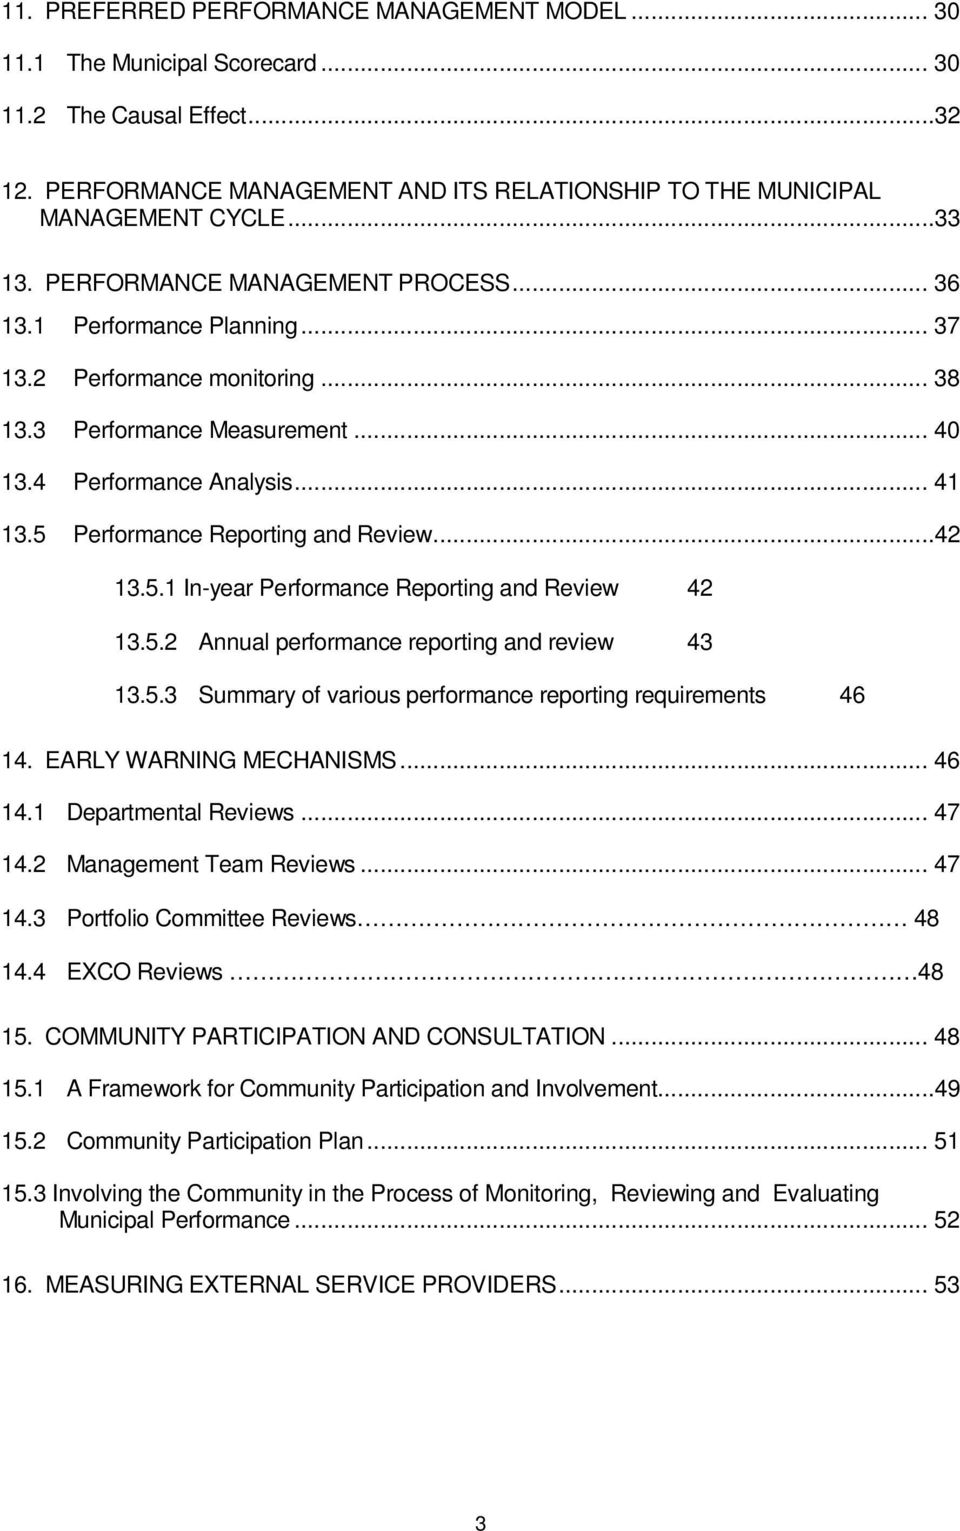 5 Performance Reporting and Review...42 13.5.1 In-year Performance Reporting and Review 42 13.5.2 Annual performance reporting and review 43 13.5.3 Summary of various performance reporting requirements 46 14.